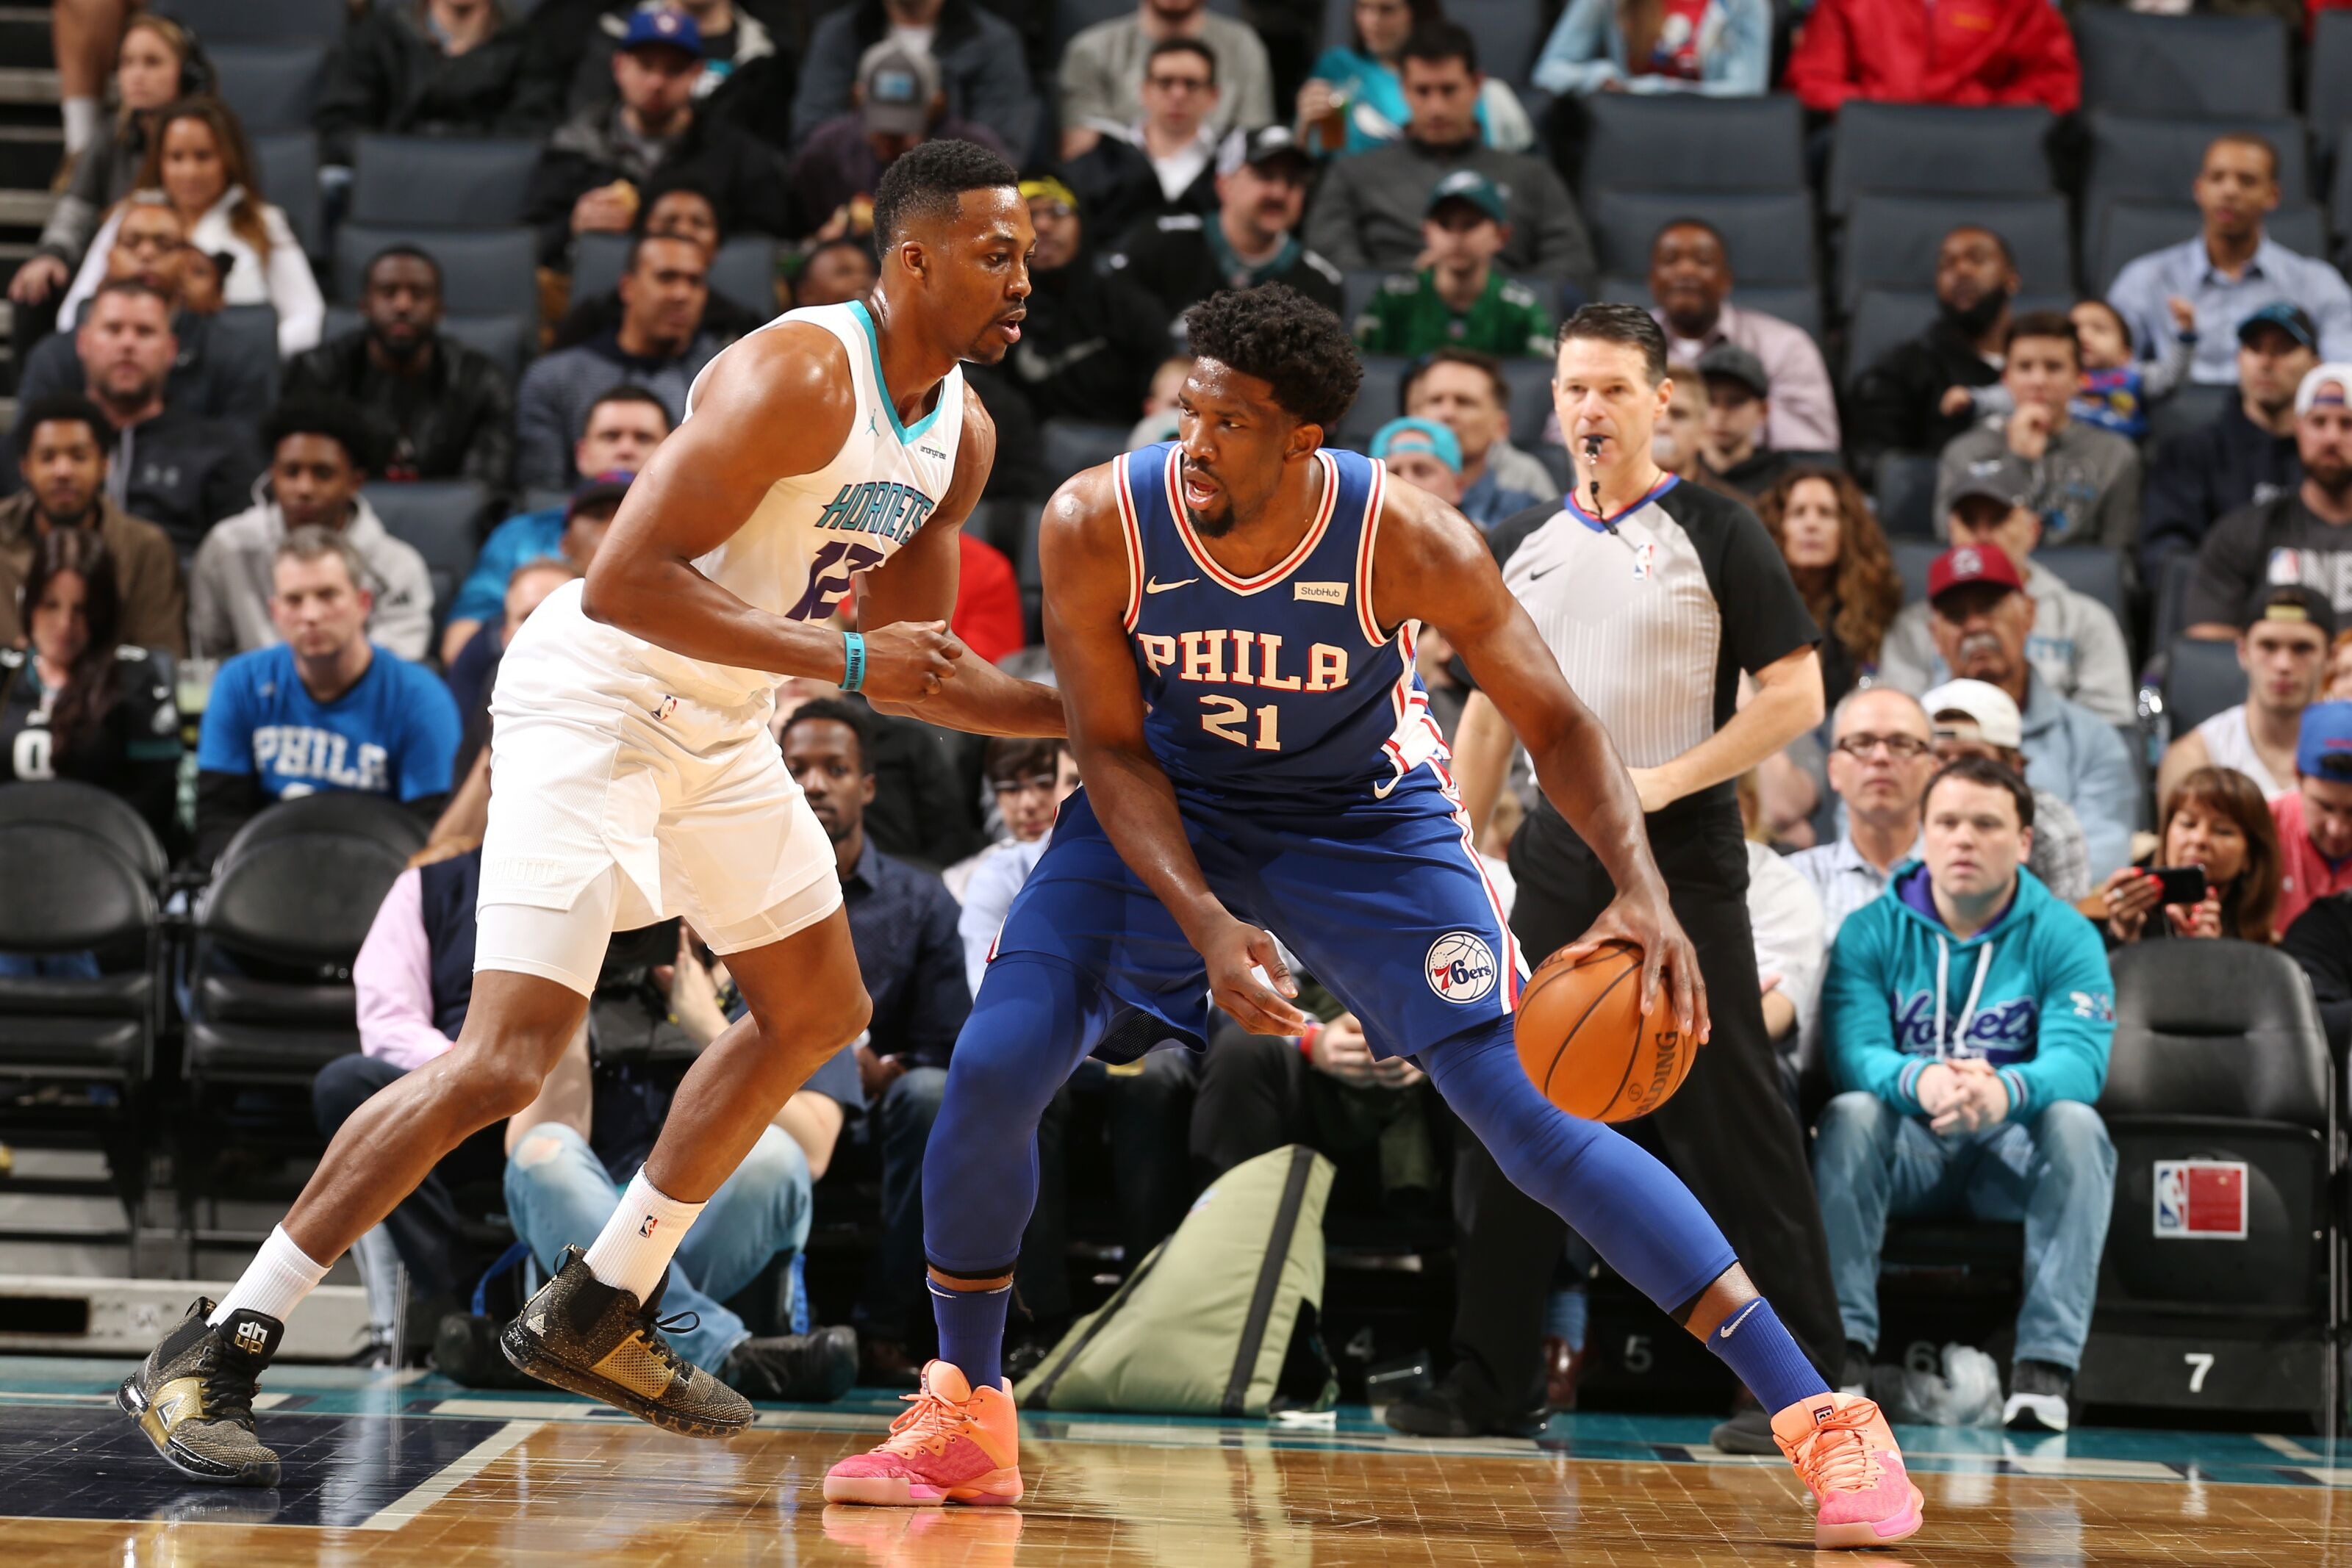 Philadelphia 76ers: Los Angeles Lakers are worried about Joel Embiid